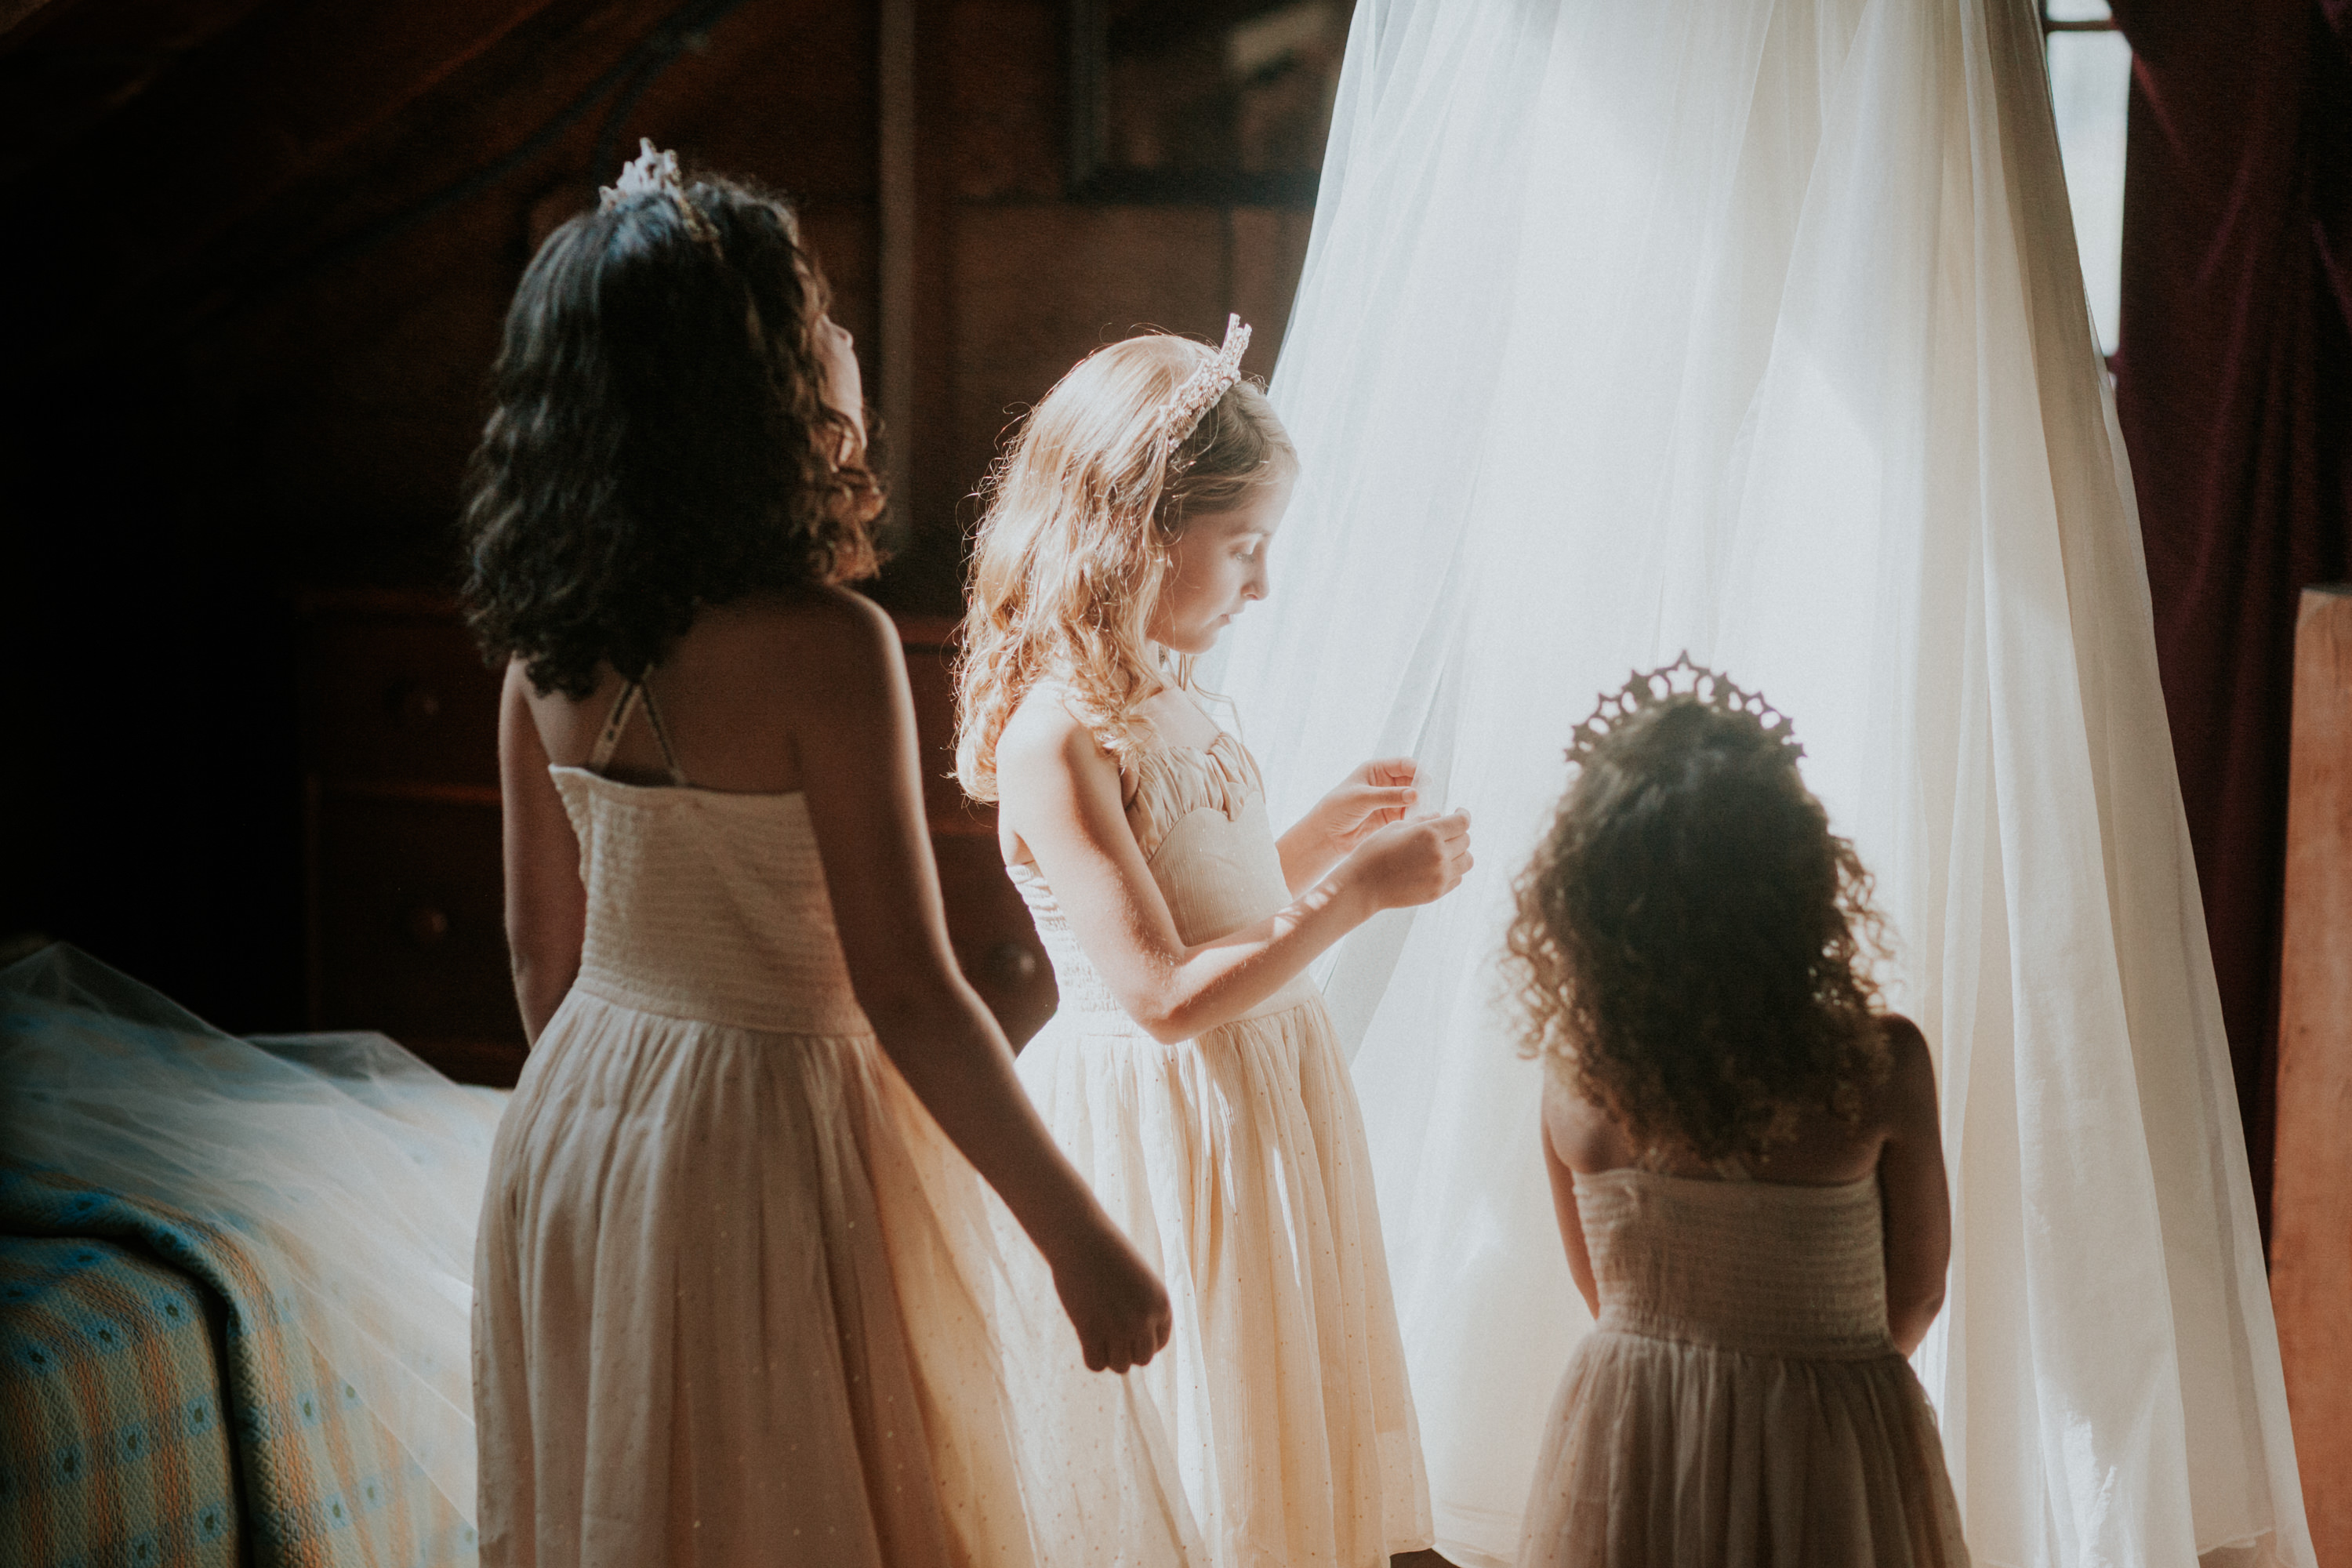 flower girls looking at wedding dress, flower girl touching wedding dress, leanne marshall dress hanging